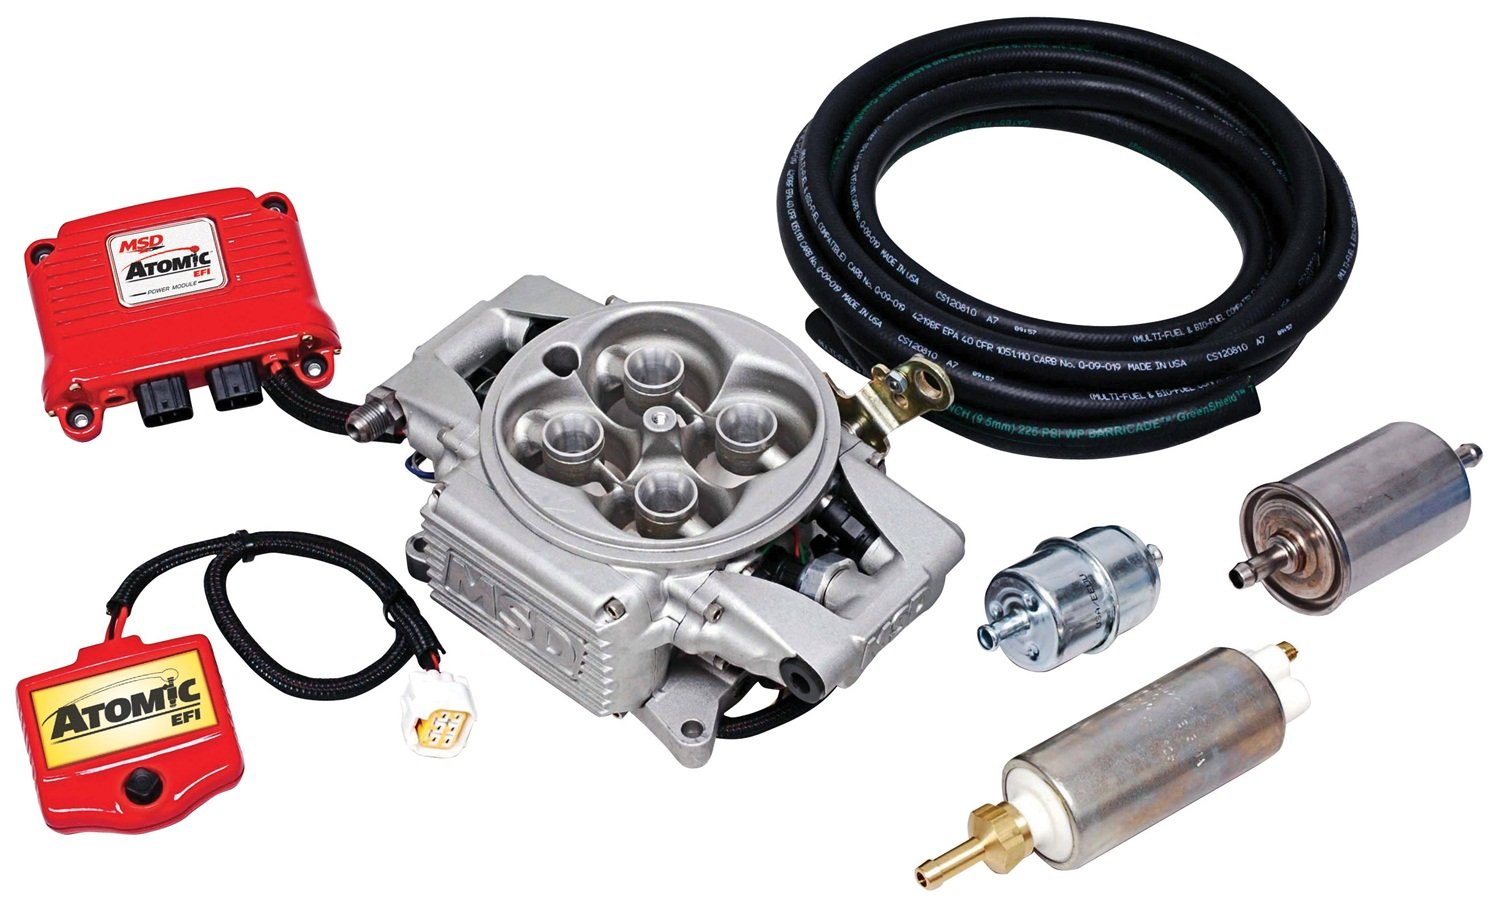 Msd 2900 Atomic Efi Master Kit Automotive 5 3l Wiring Harness